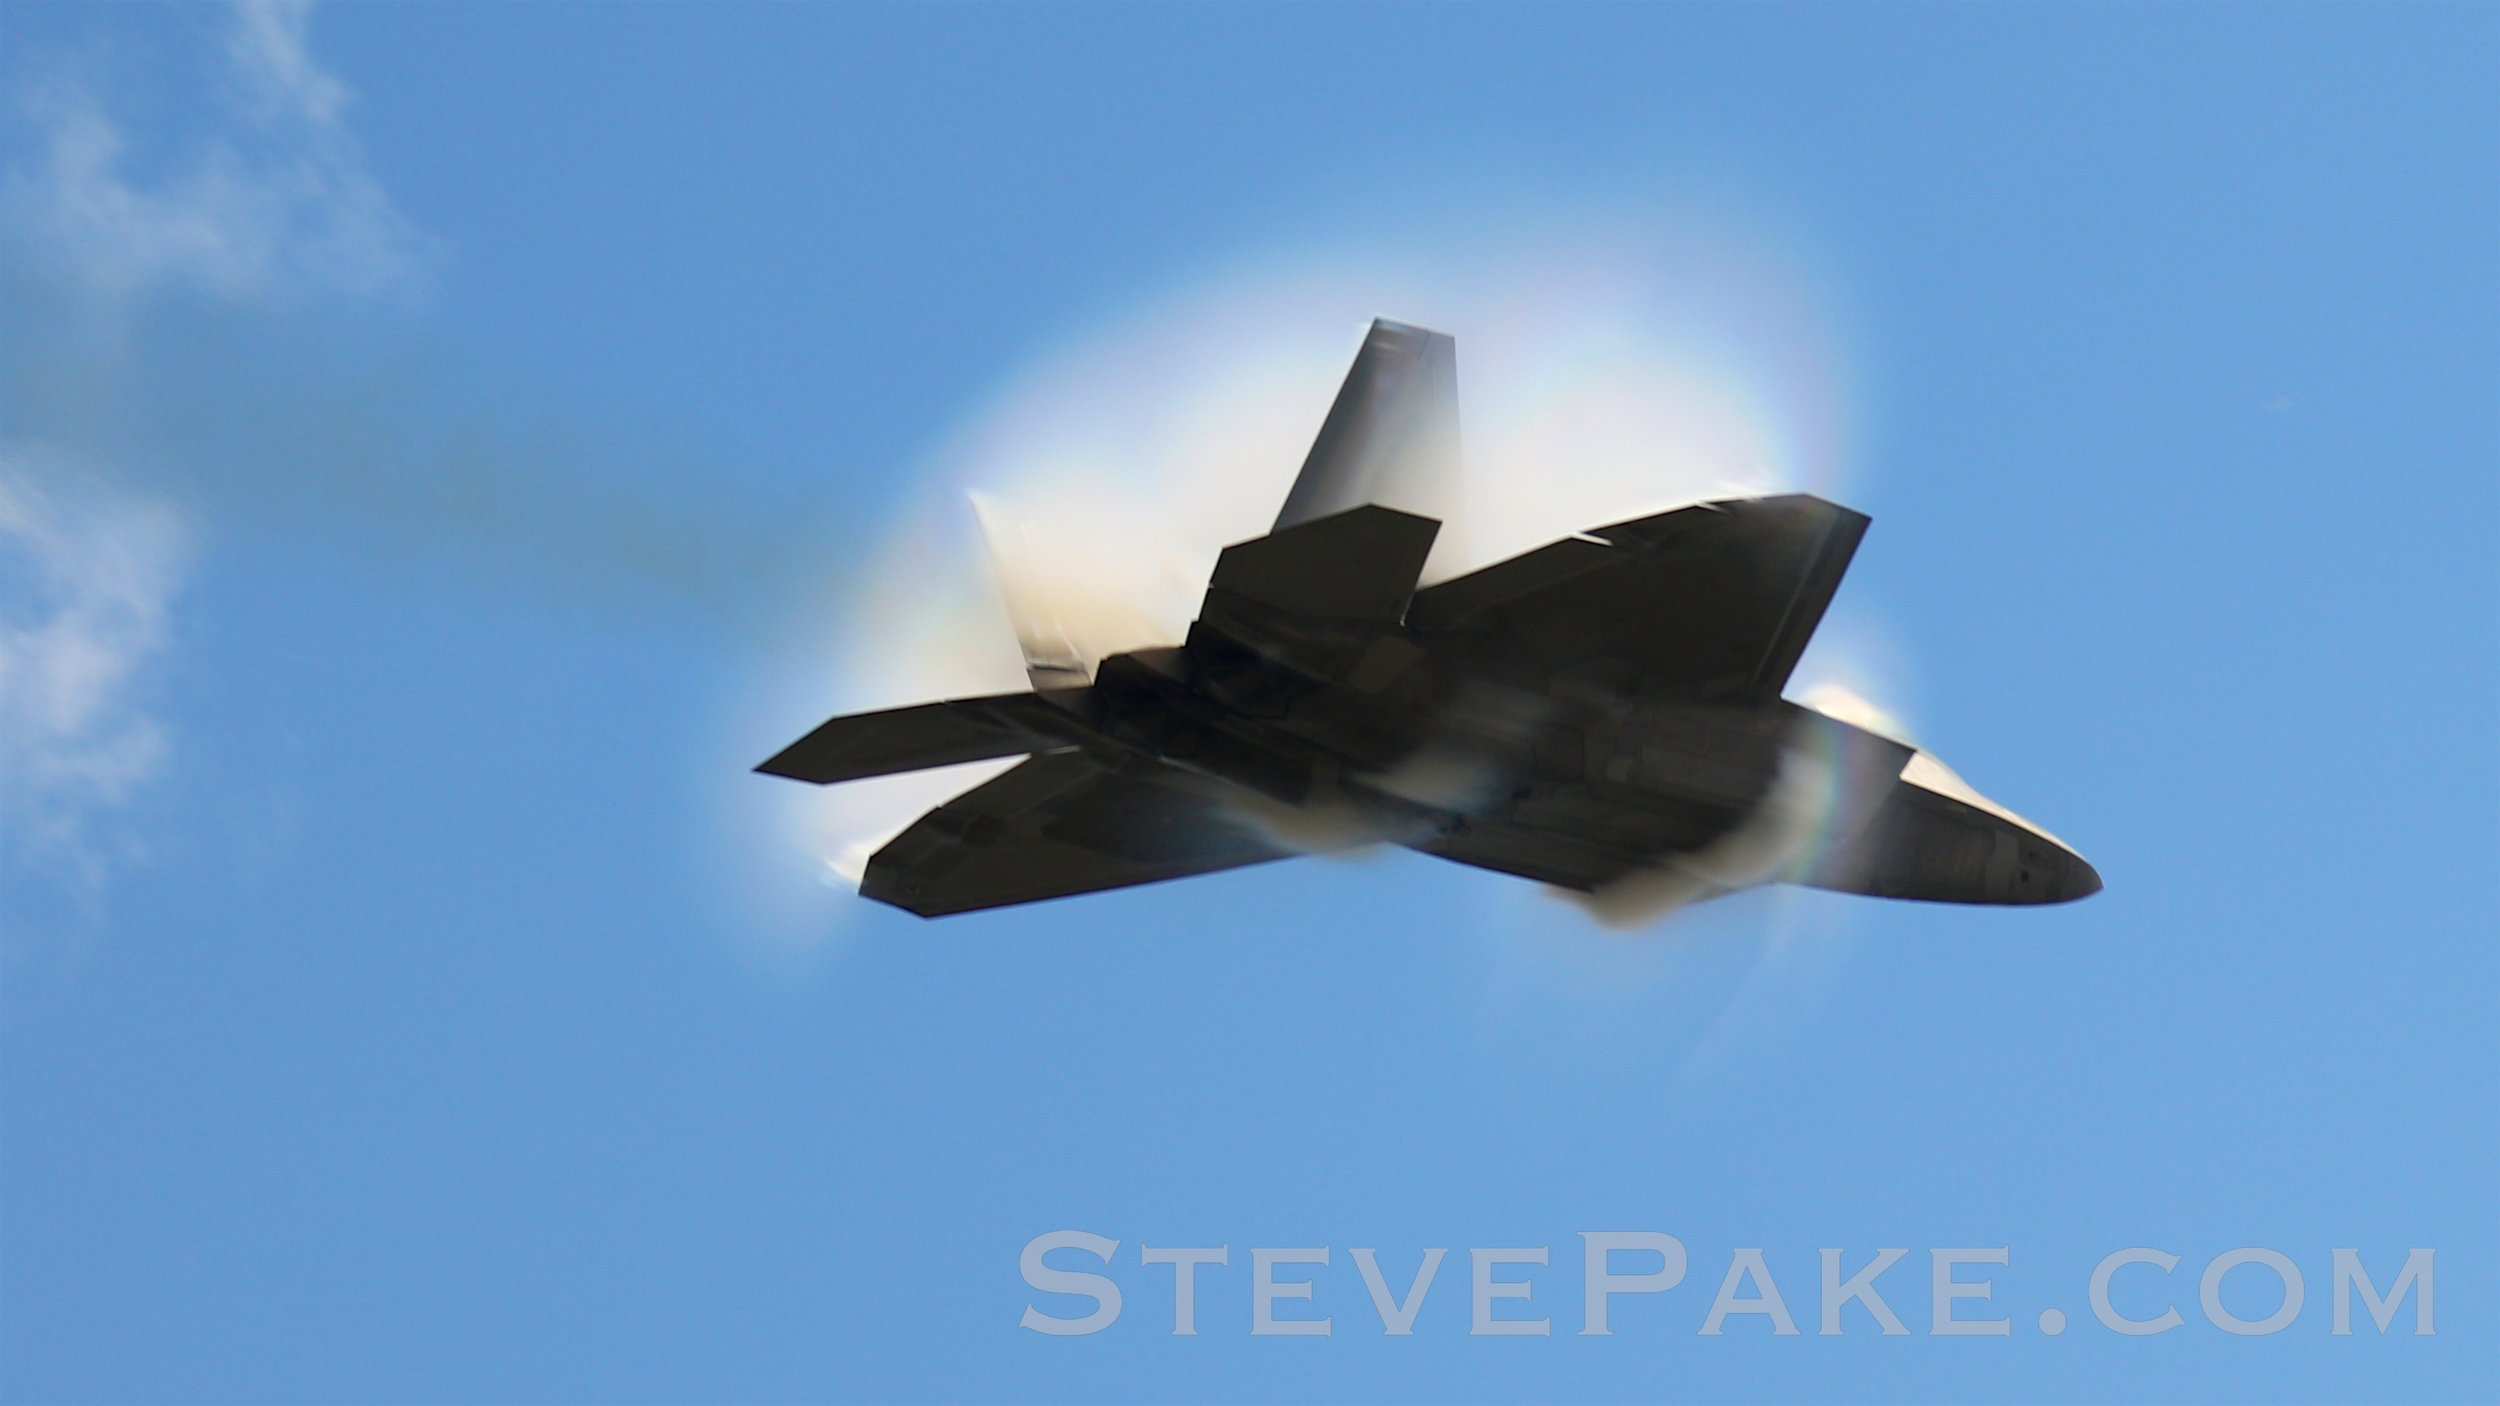 "Prize Shot: The transonic F-22 Raptor pass. It's just stunning! This was right over our heads at a focal length of only 135mm, so my cheap 18-135mm kit lens could have gotten this shot! It helps to have top notch equipment, but you don't ""need"" to have exotic super telephoto lenses to get great photos!!!"